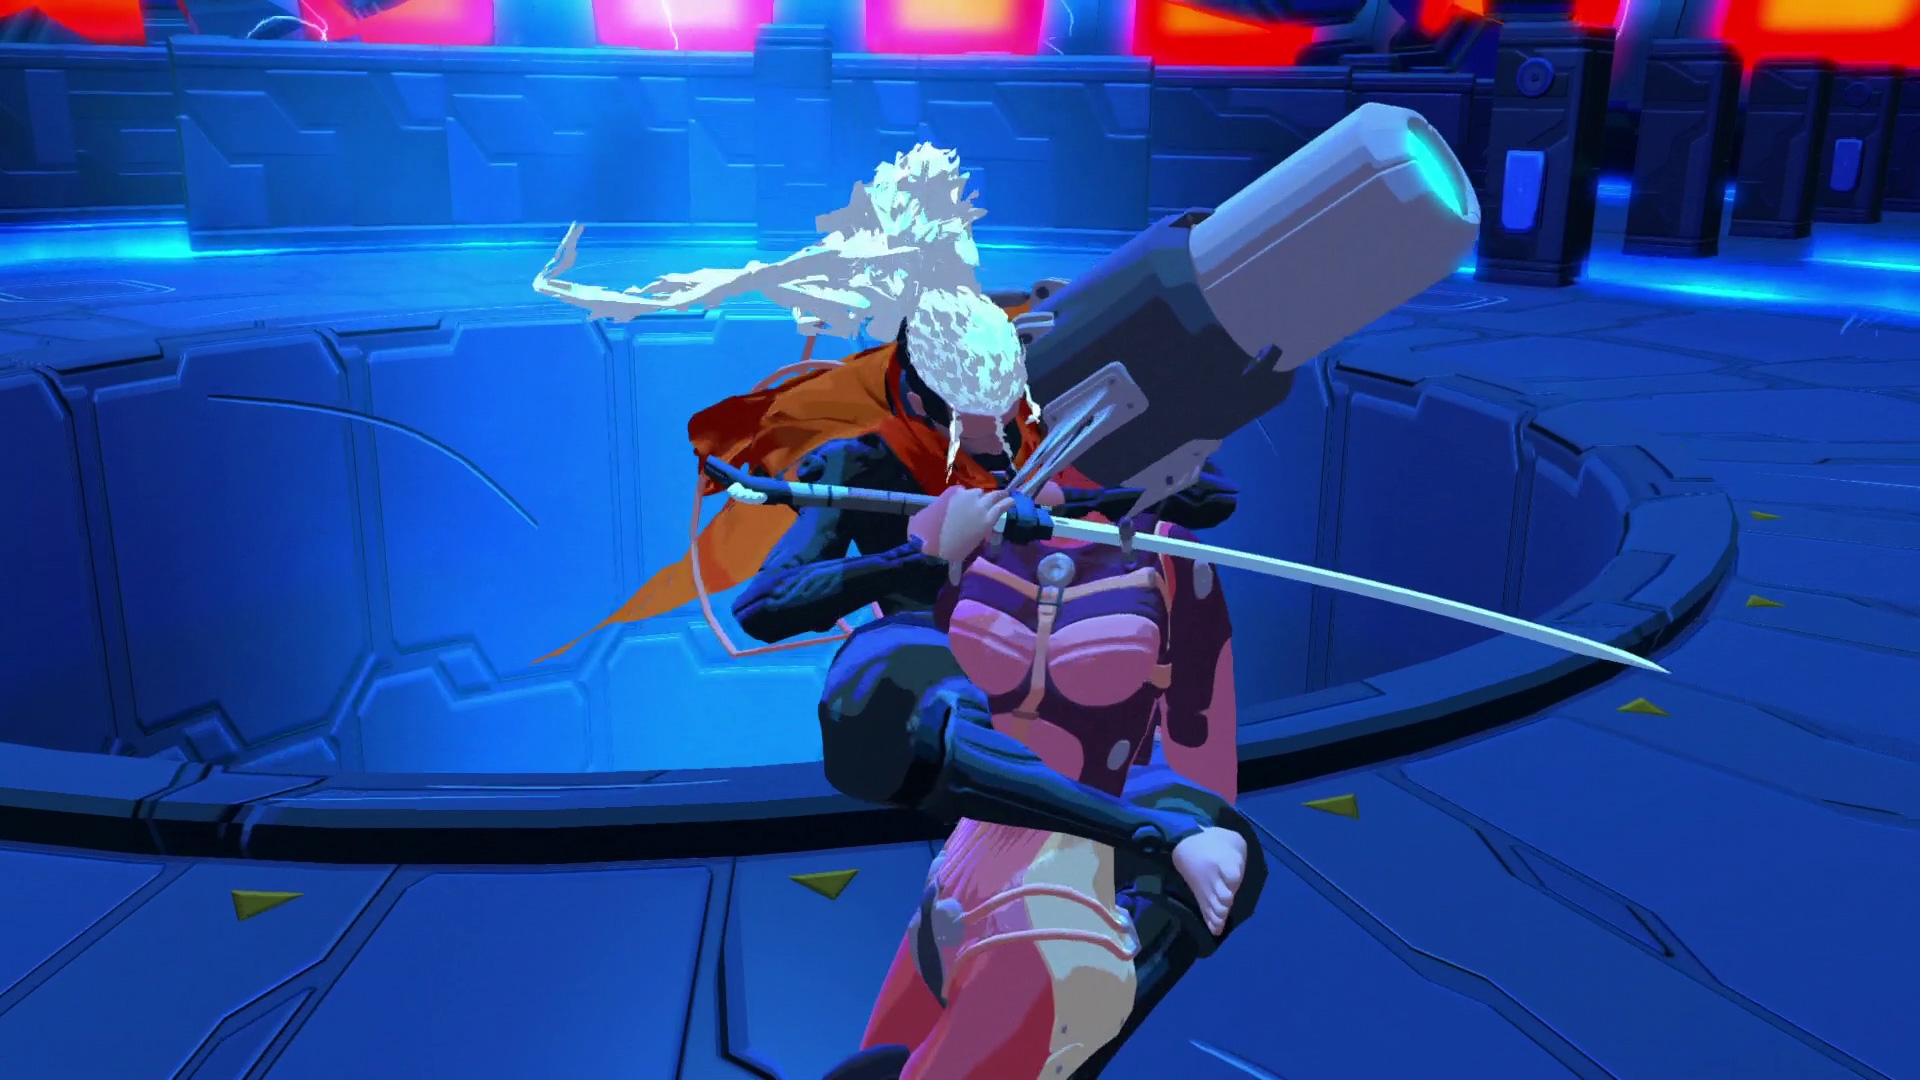 Furi releases on Switch next week